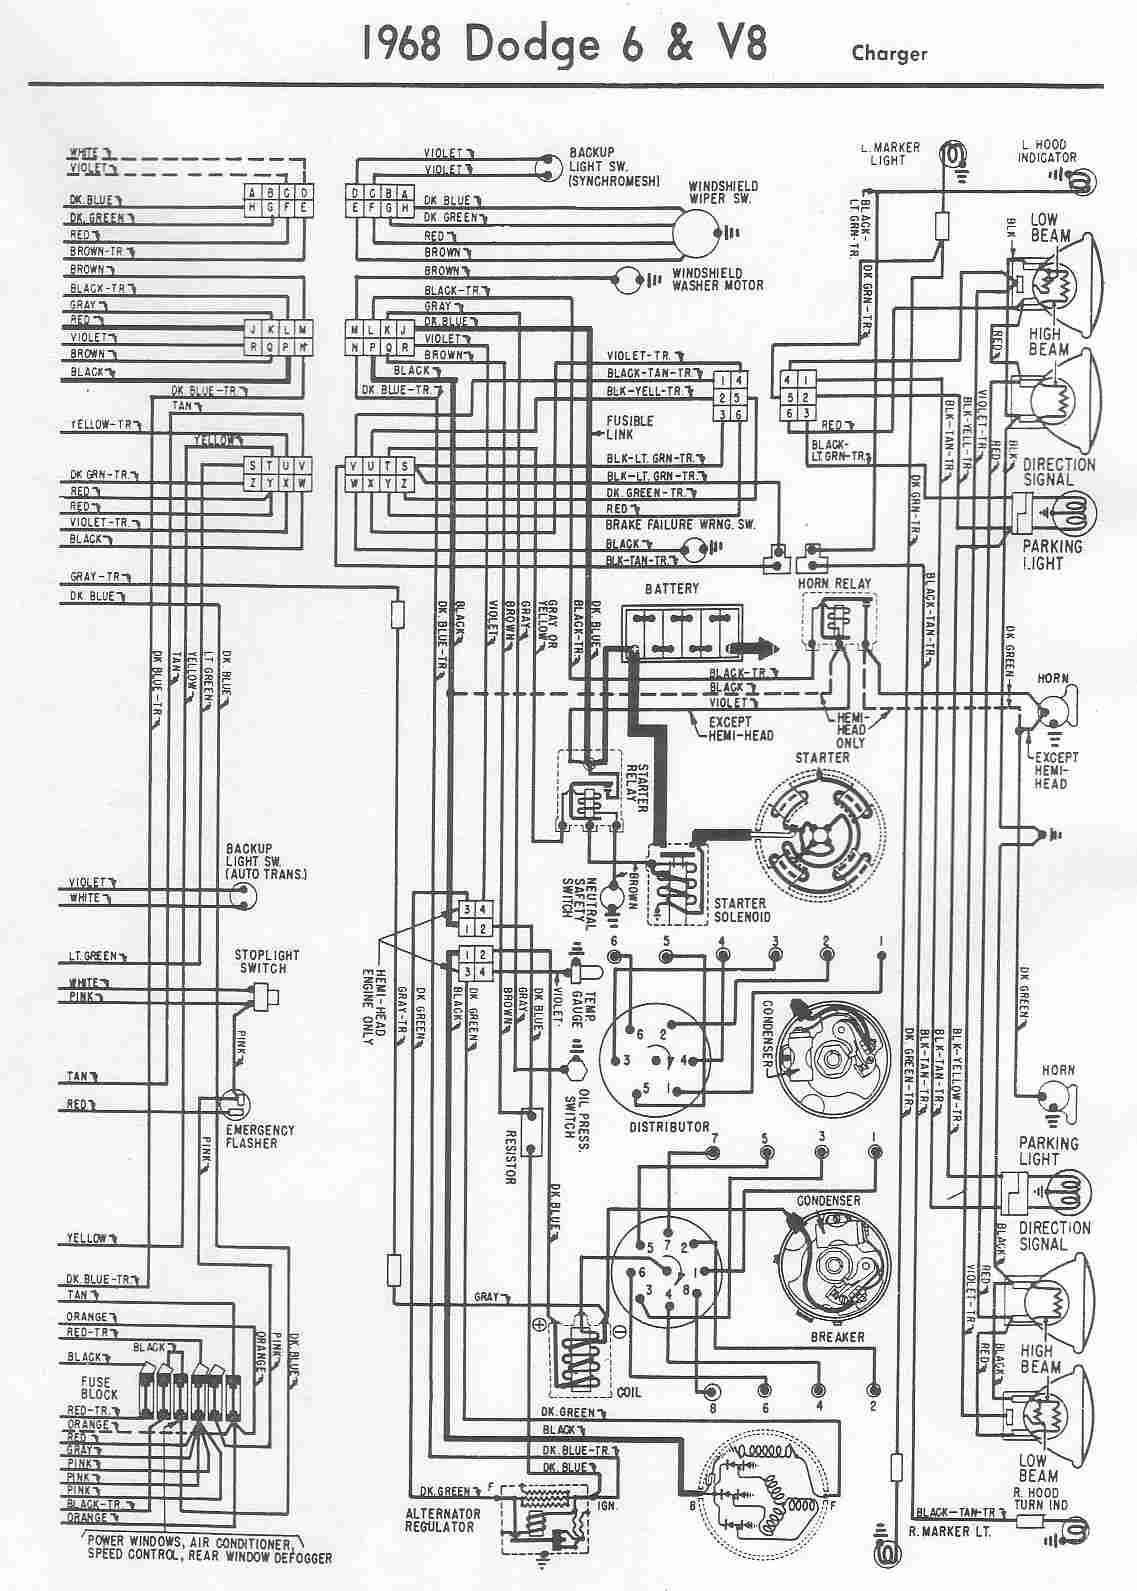 charger electrical wiring diagram of 1968 dodge 6 and v8?t=1508404771 dodge car manuals, wiring diagrams pdf & fault codes 1970 dodge challenger wiring diagram at bayanpartner.co